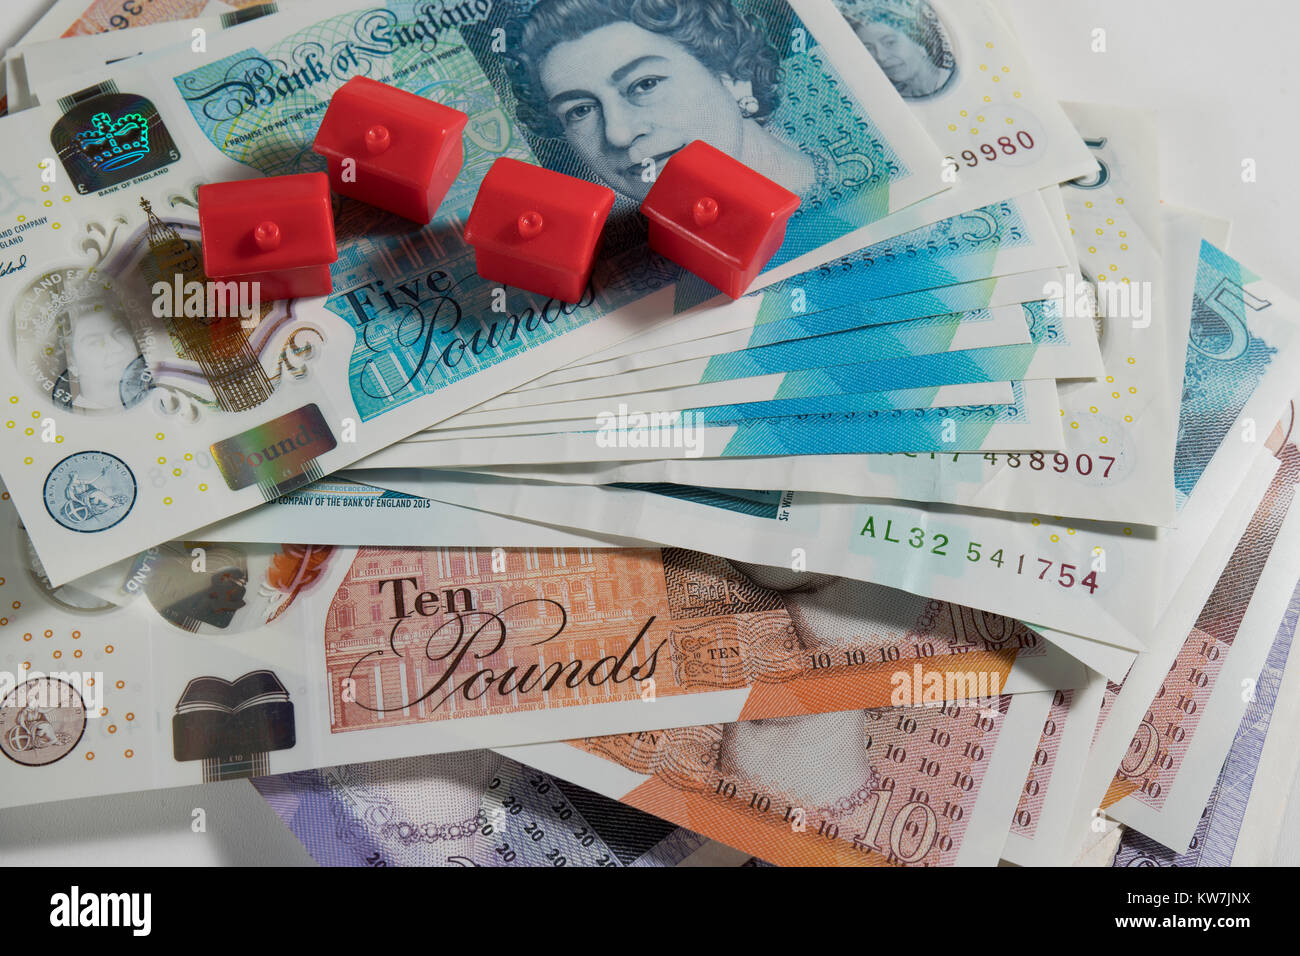 5, 10 and 20 Pound notes randomly arranged with red monopoly hotels - Stock Image